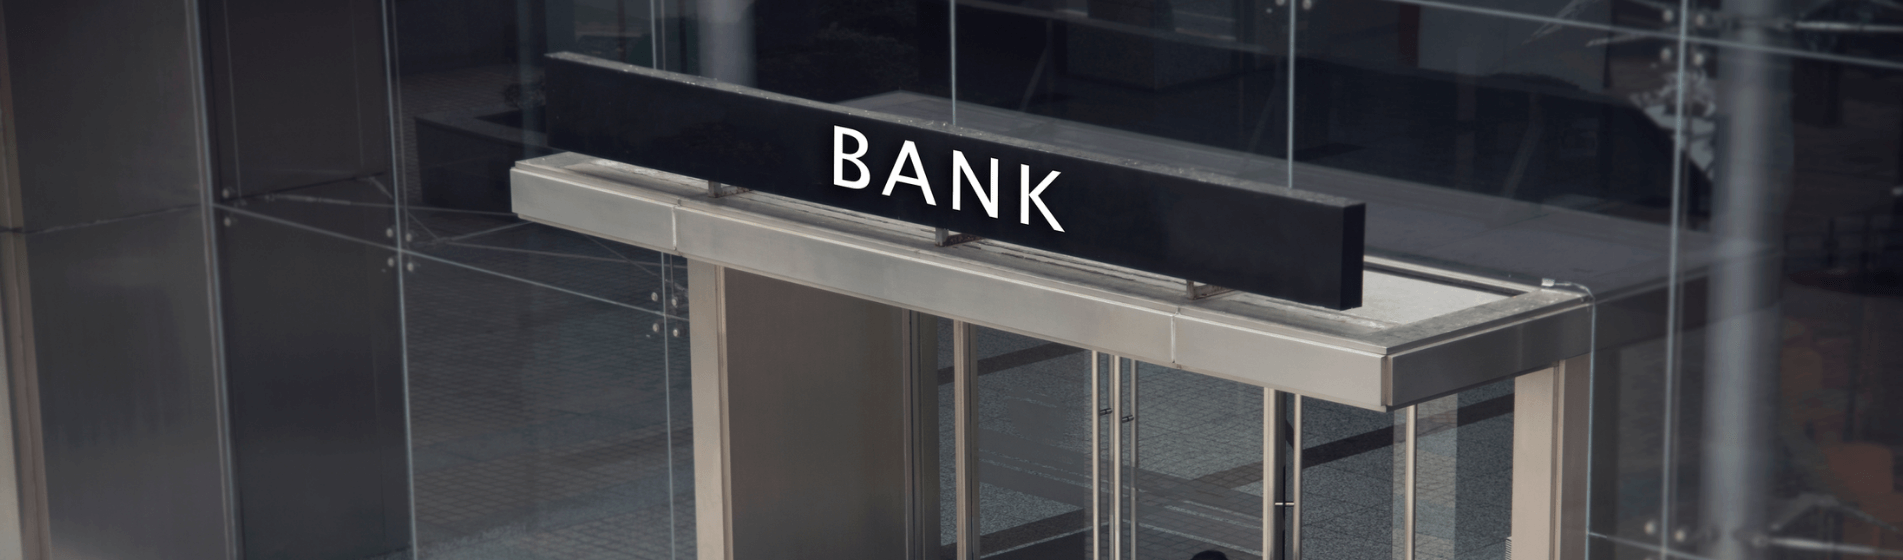 Offshore Banking Explained In Small Details – Top 10 Offshore Banks To Consider 2020